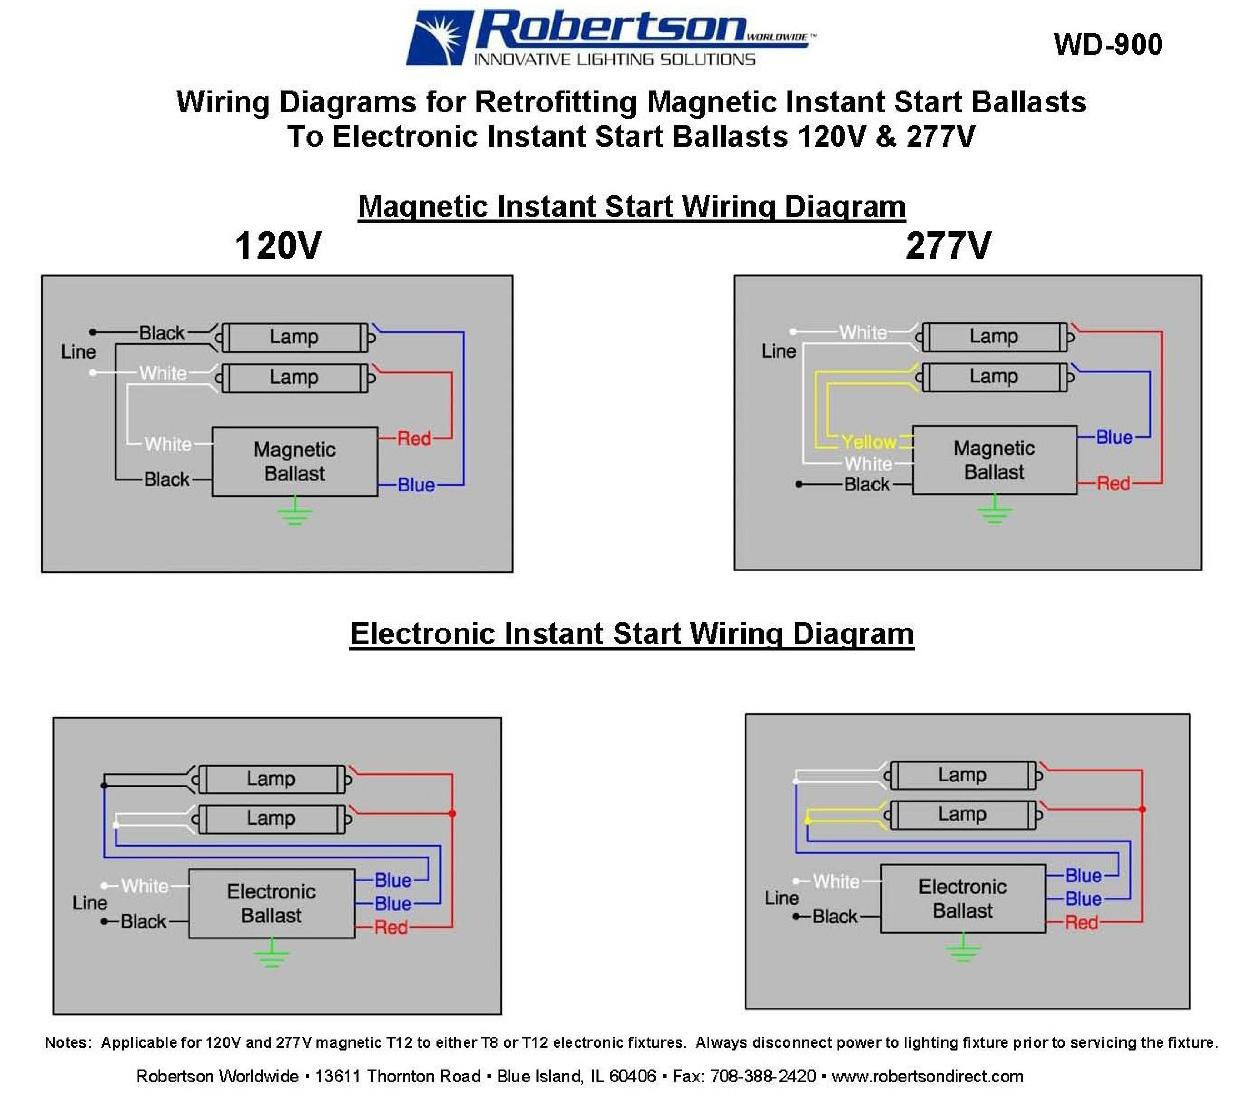 Wh L Wiring Diagram on 120 wiring color, 120 240 3 phase diagram, 120 208 3 phase diagram, 208 volt three-way system diagram, 120 wiring symbols, 120 volt outlet diagram,